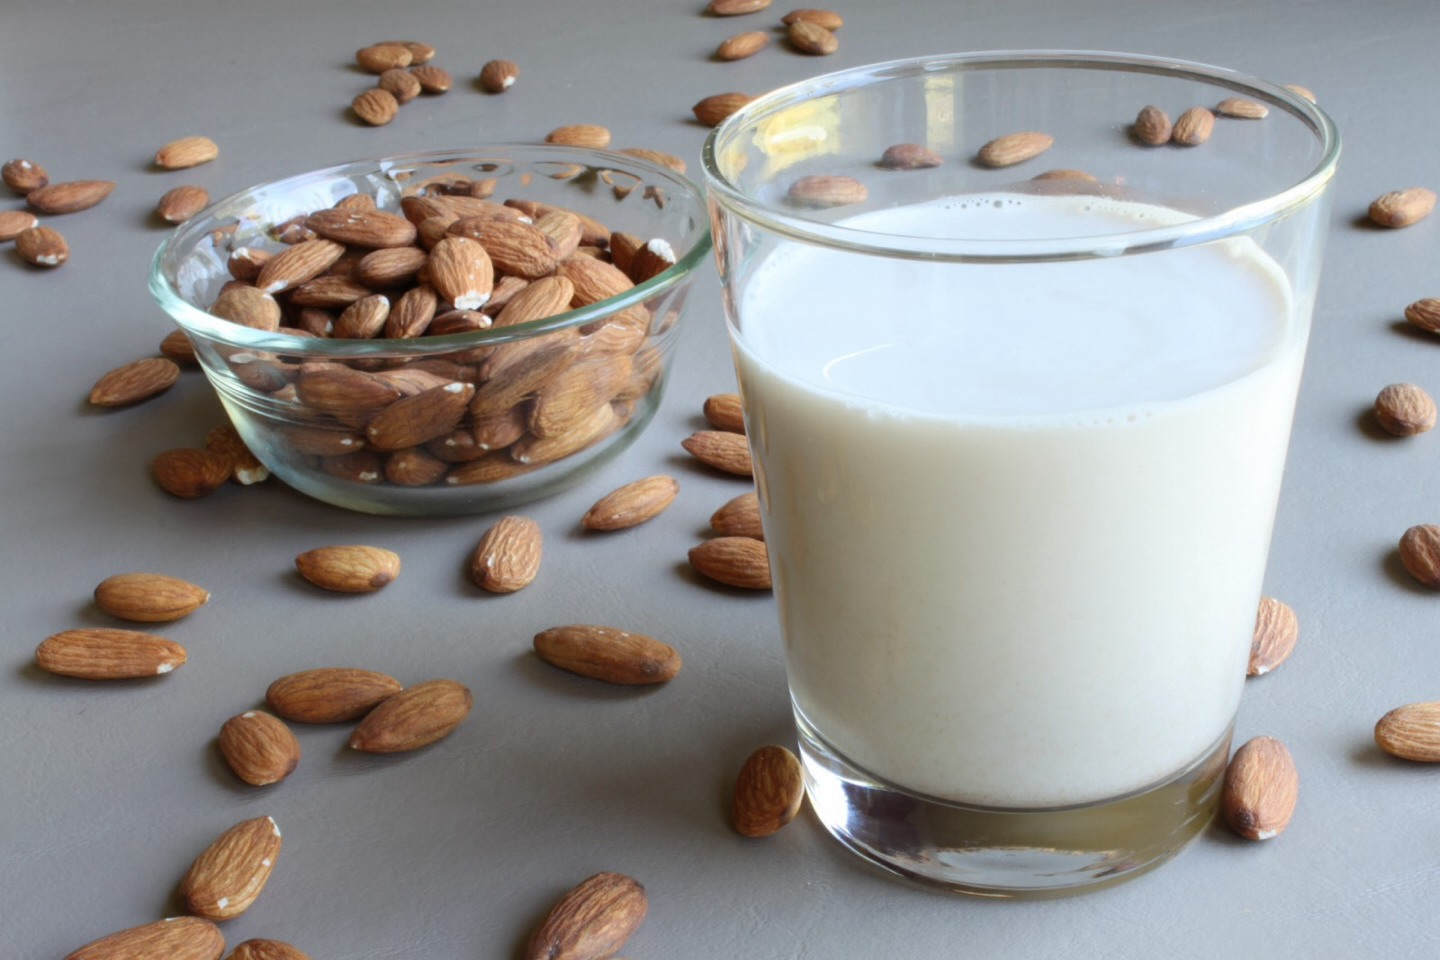 Milk & Almond Oil Face Makeup Remover 1 Tbsp. of whole milk 2 - 3 Drops of sweet almond oil In a small bowl, mix the whole milk with a few drops of sweet almond oil. Dab the milky cleanser on your skin with one cotton pad and use a second, clean cotton pad to wipe your face clean.